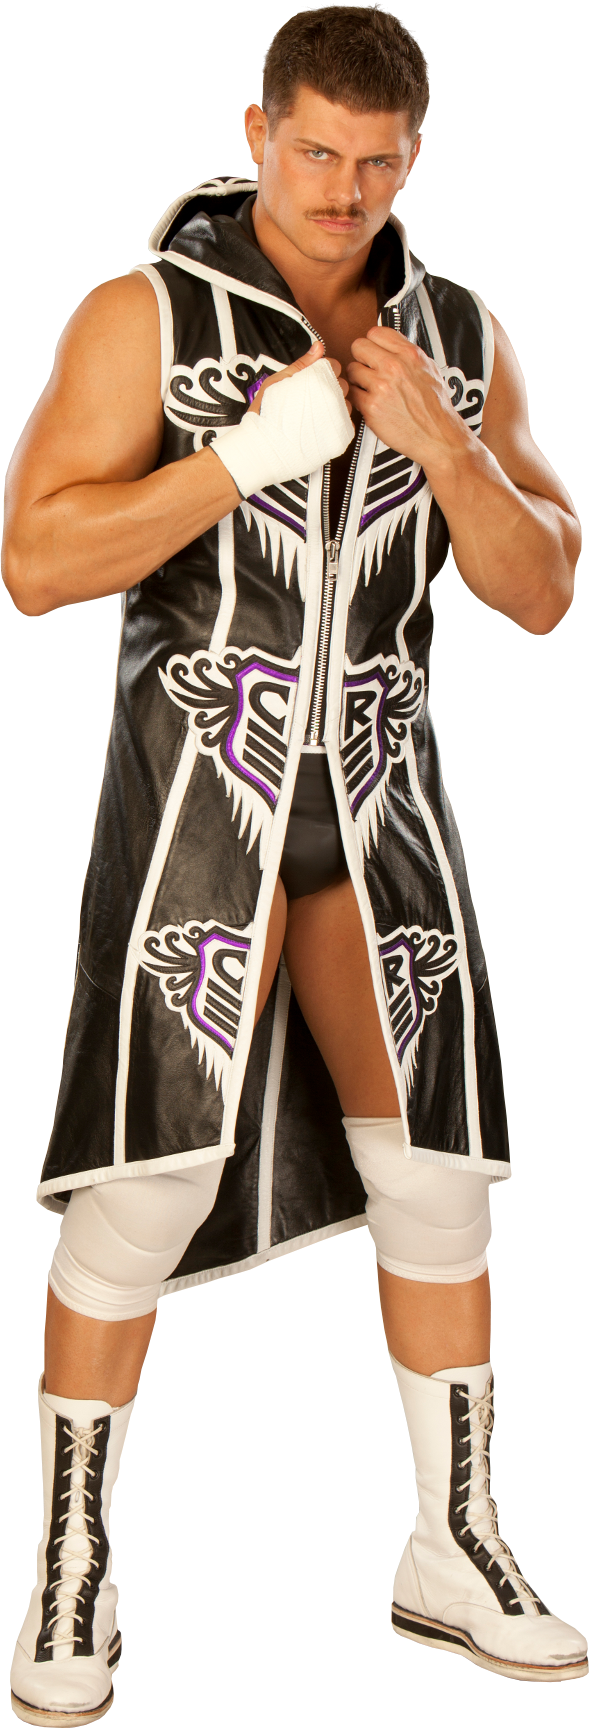 Image Cody rhodes 3 3 png Pro Wrestling Fandom powered by Wikia